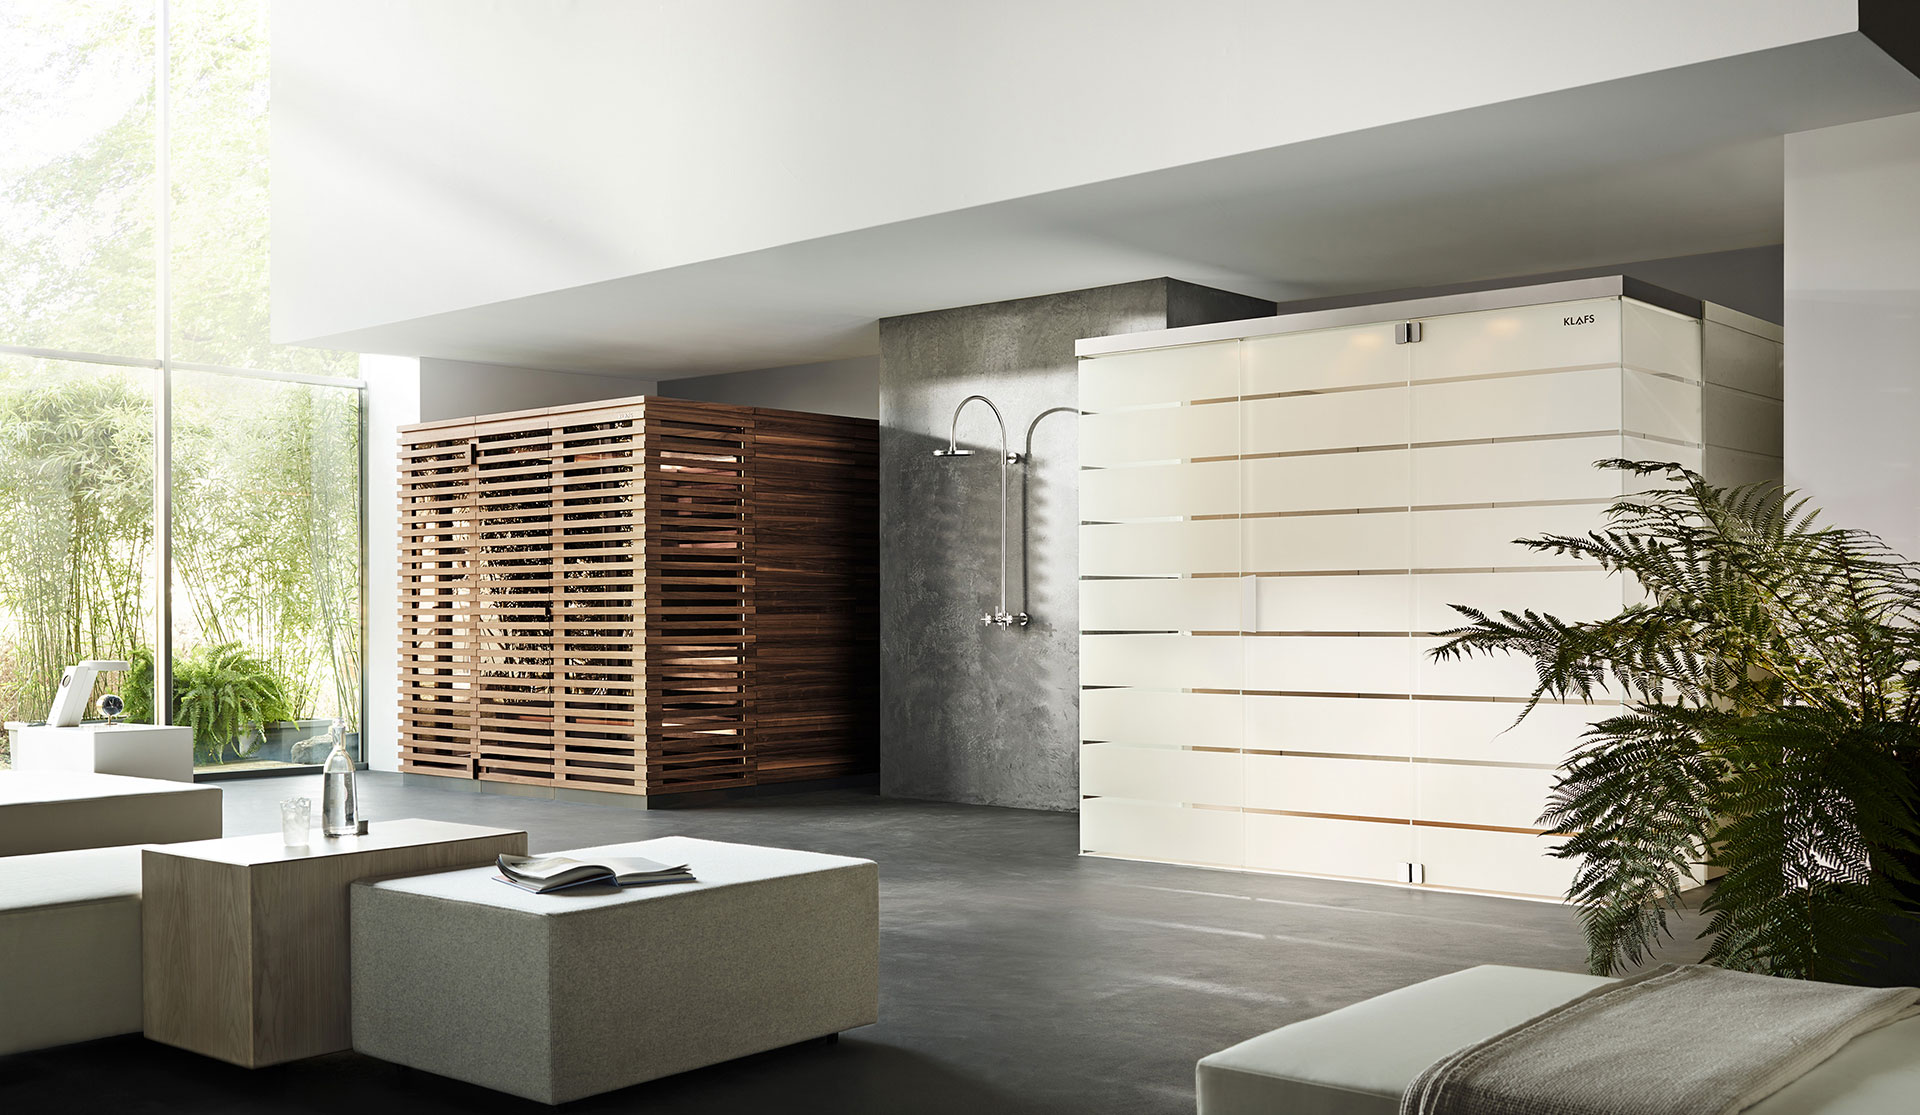 Klafs sauna and steam bath by Matteo Thun and Antonio Rodriguez